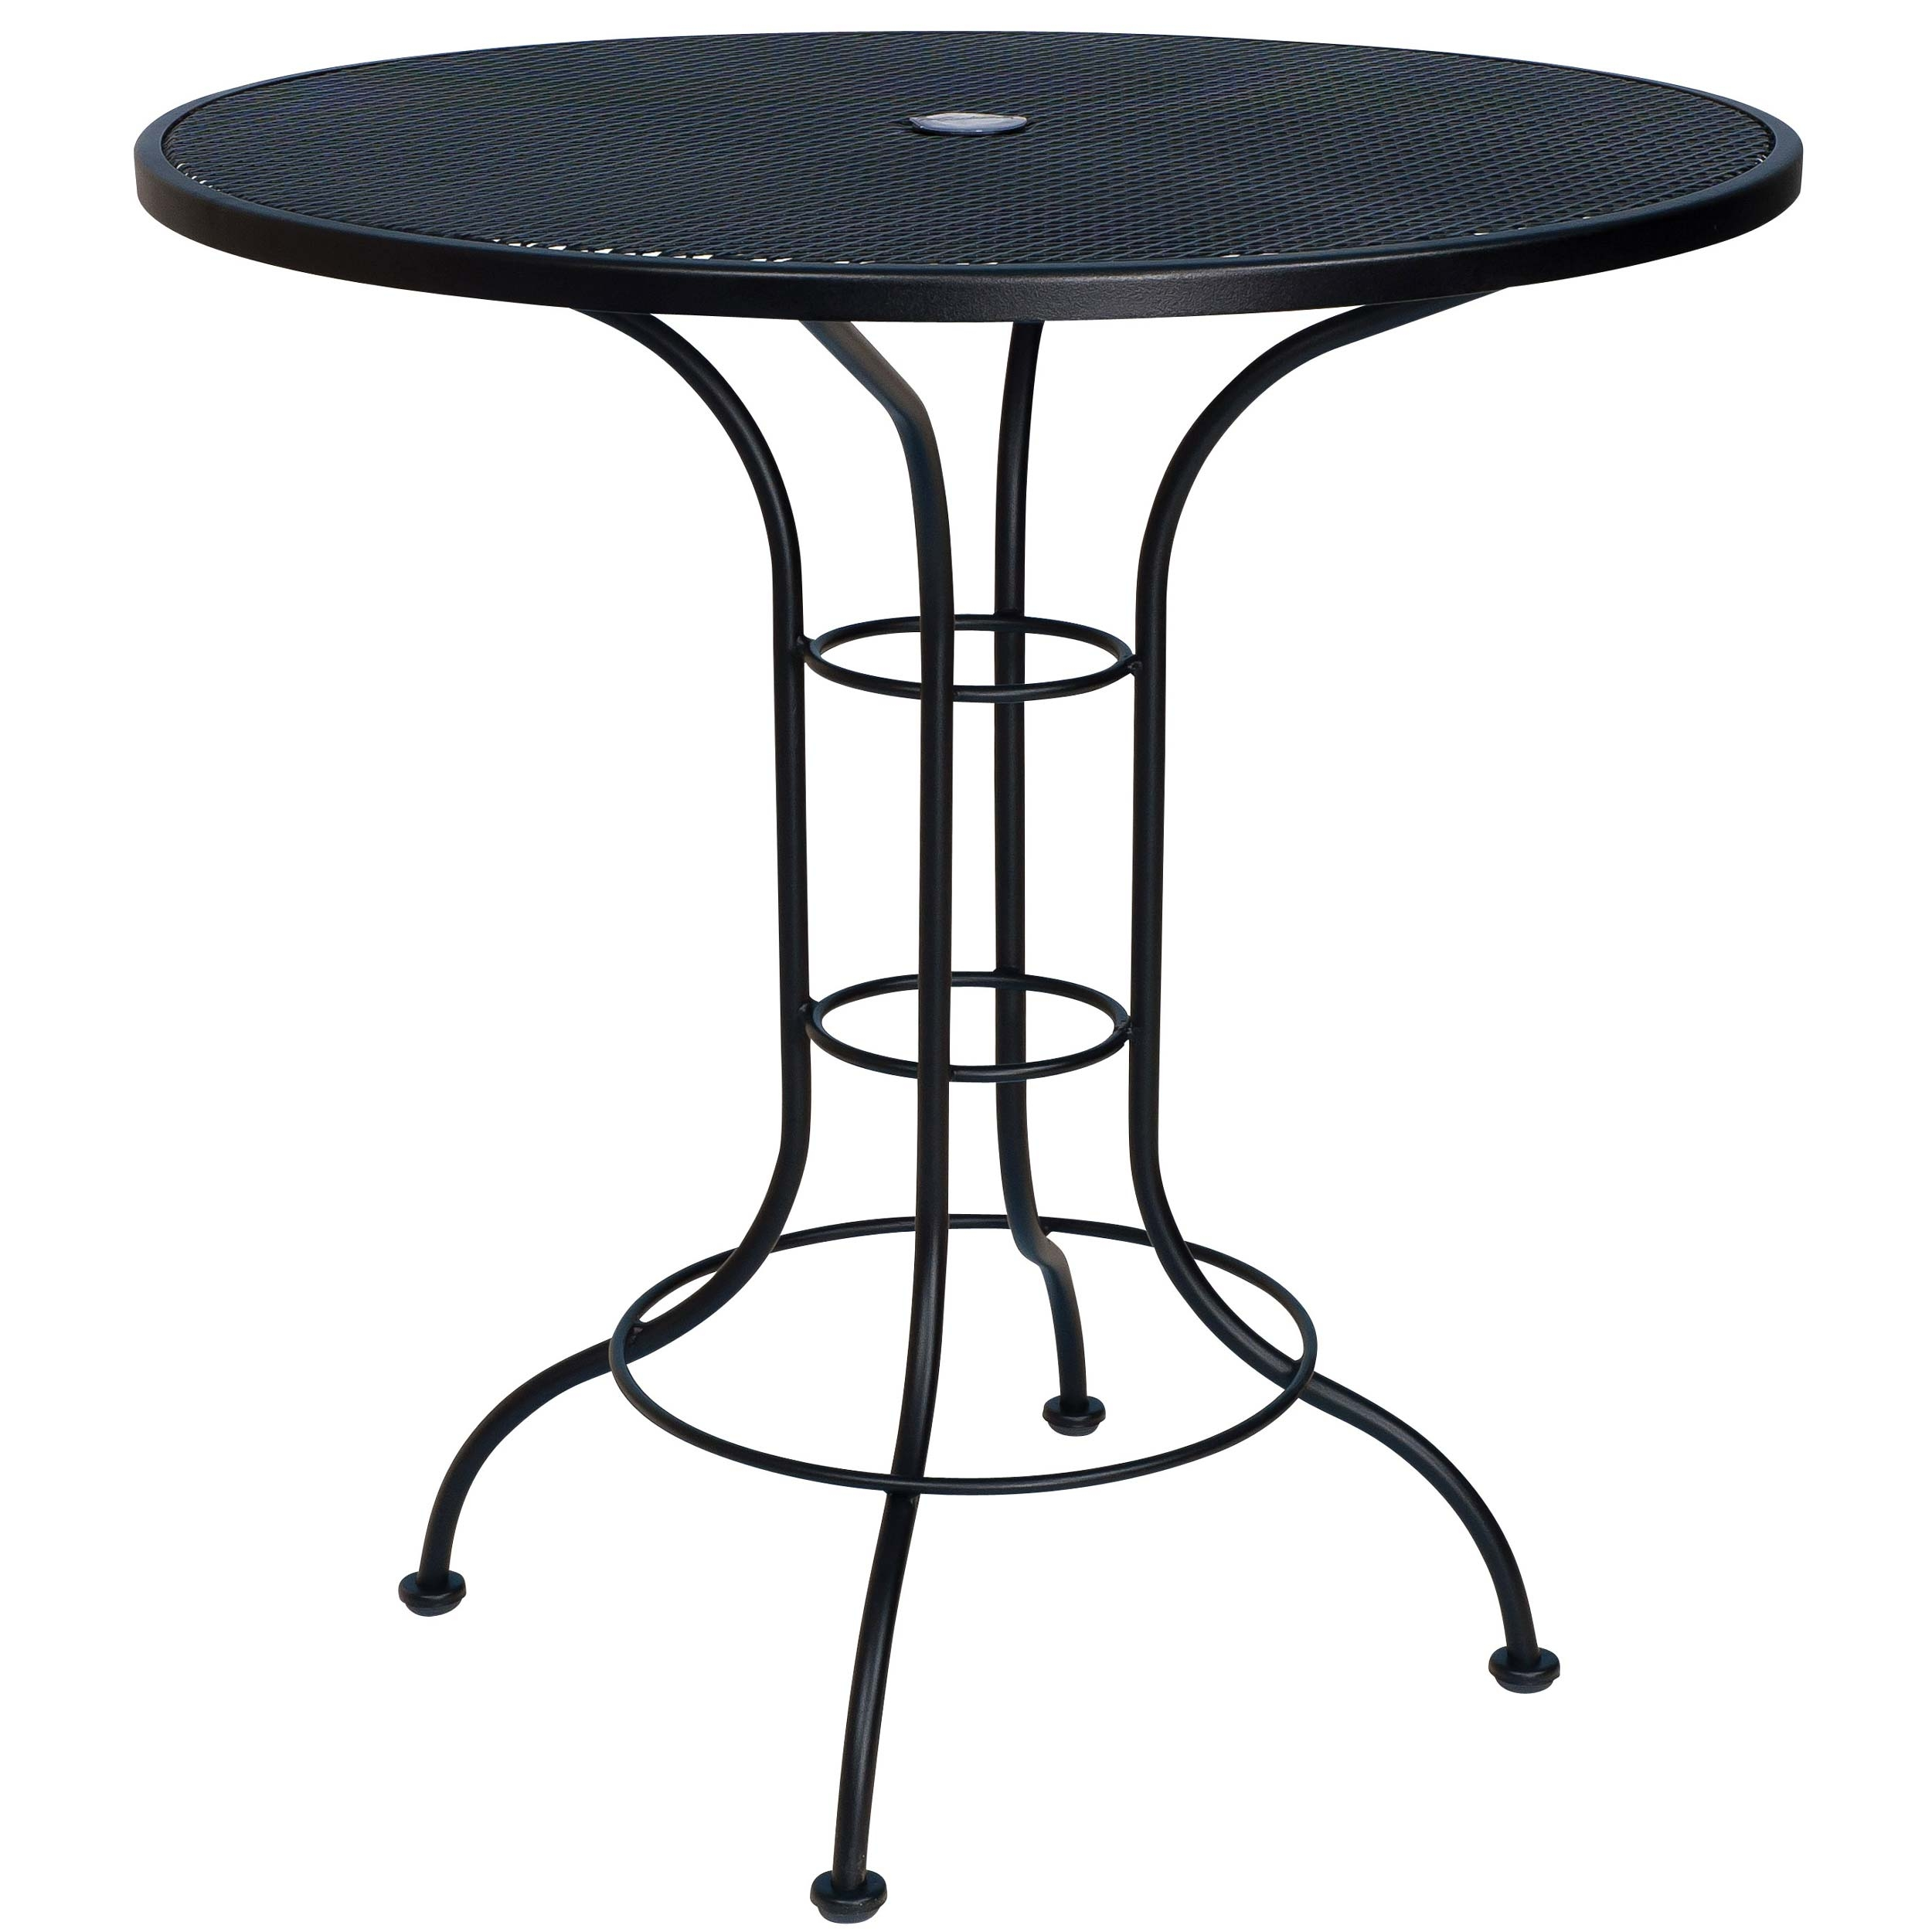 Pictured Is The 36 Round Counter Height Outdoor Bistro Table With Mesh